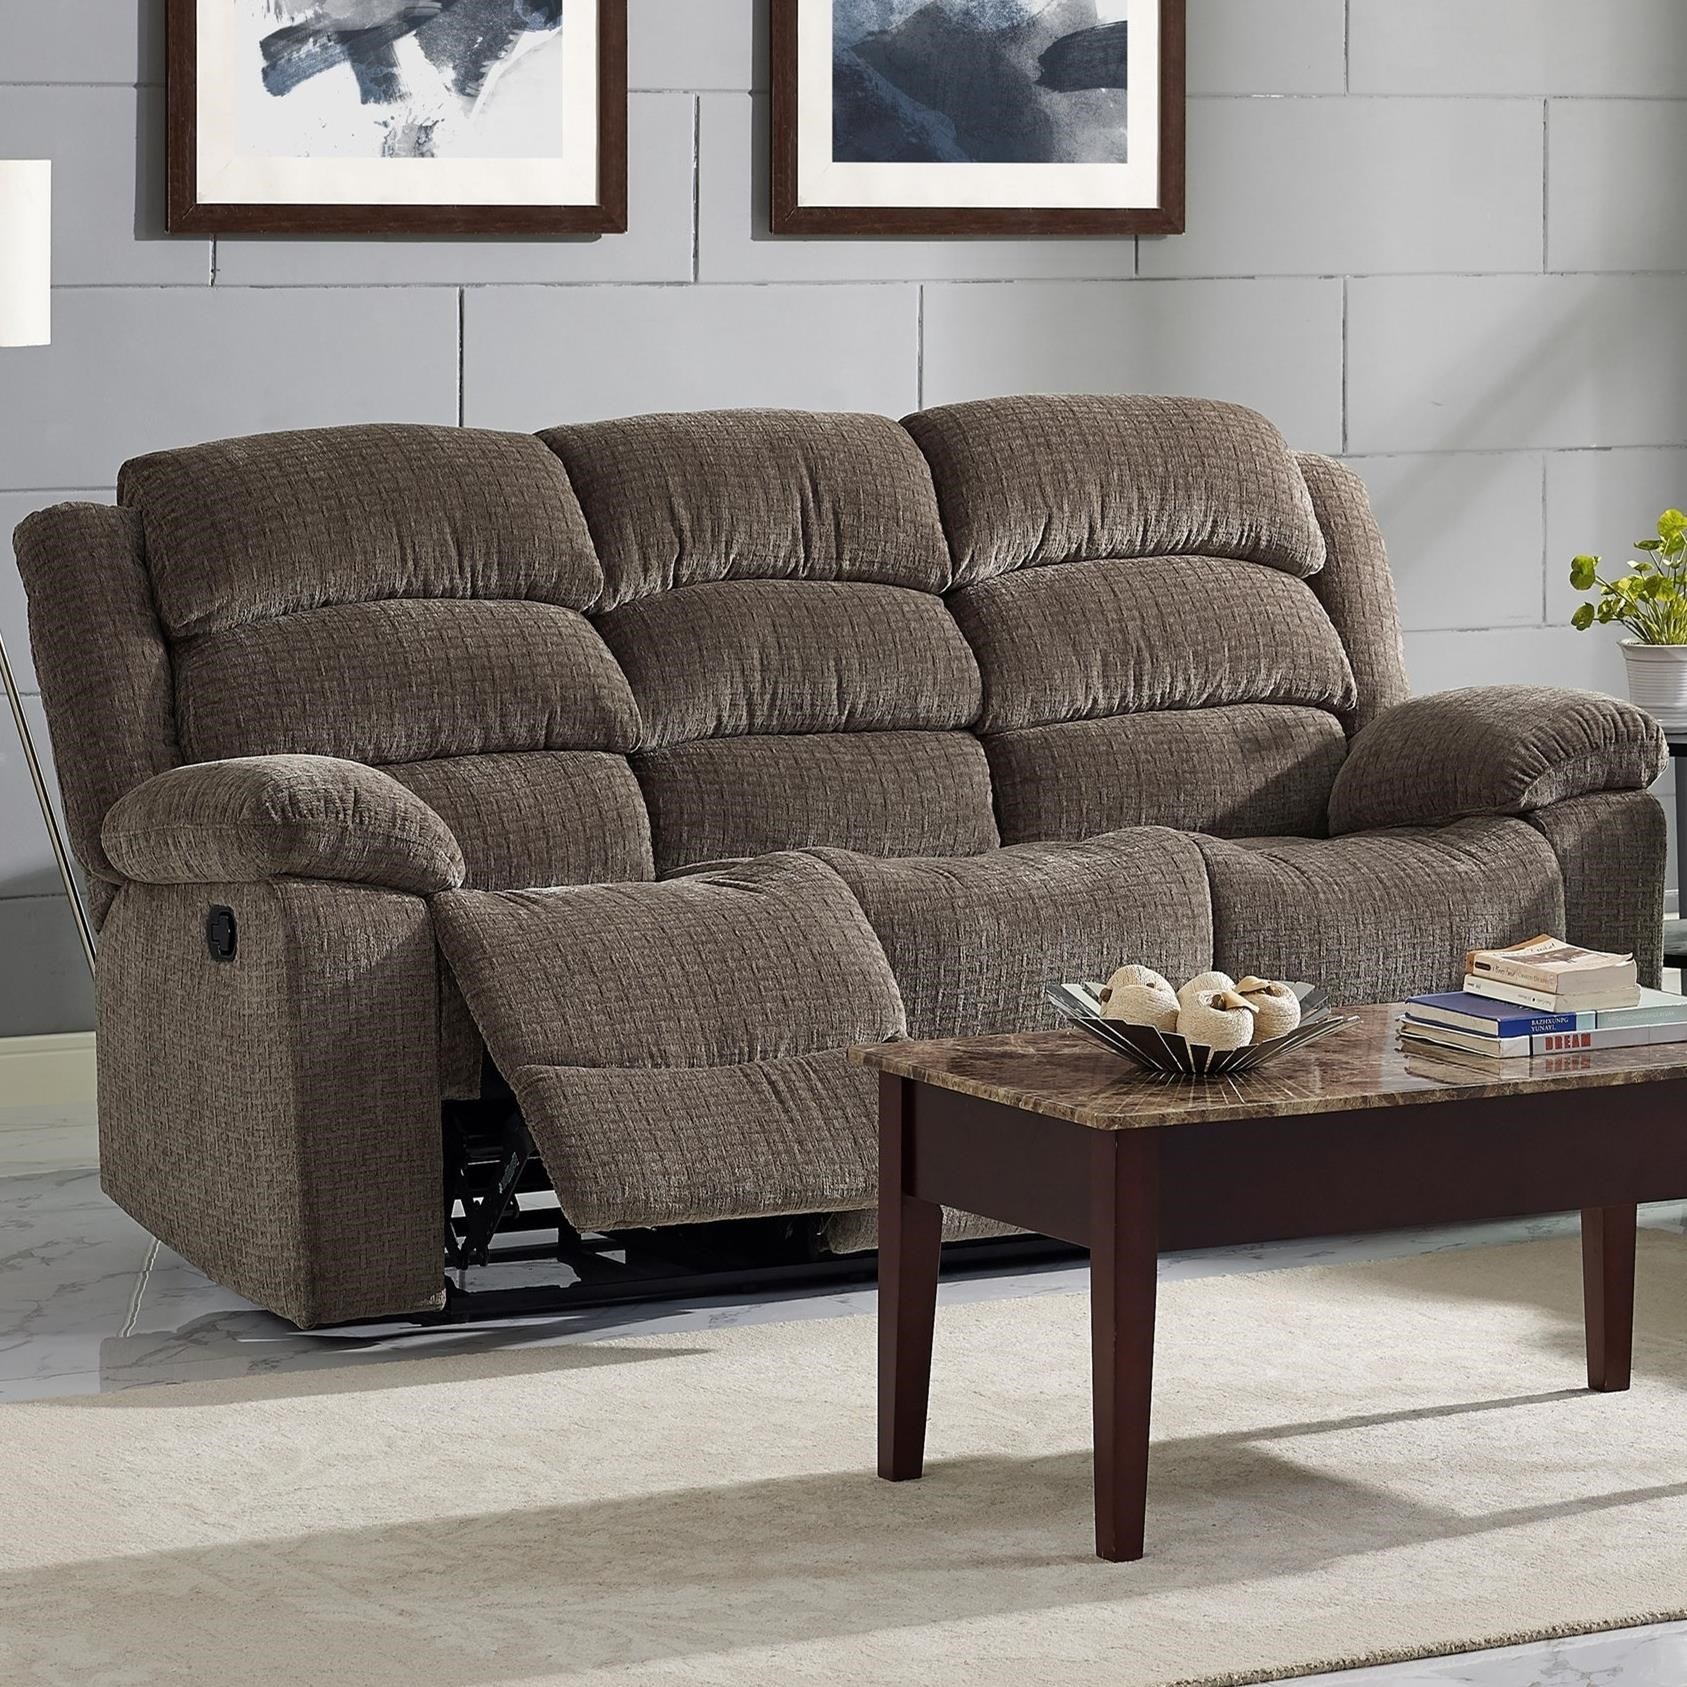 New Classic Austin Reclining Sofa - Item Number 20-2134-30-UBR & New Classic Austin Casual Reclining Sofa with Bustle Back - Old ... islam-shia.org